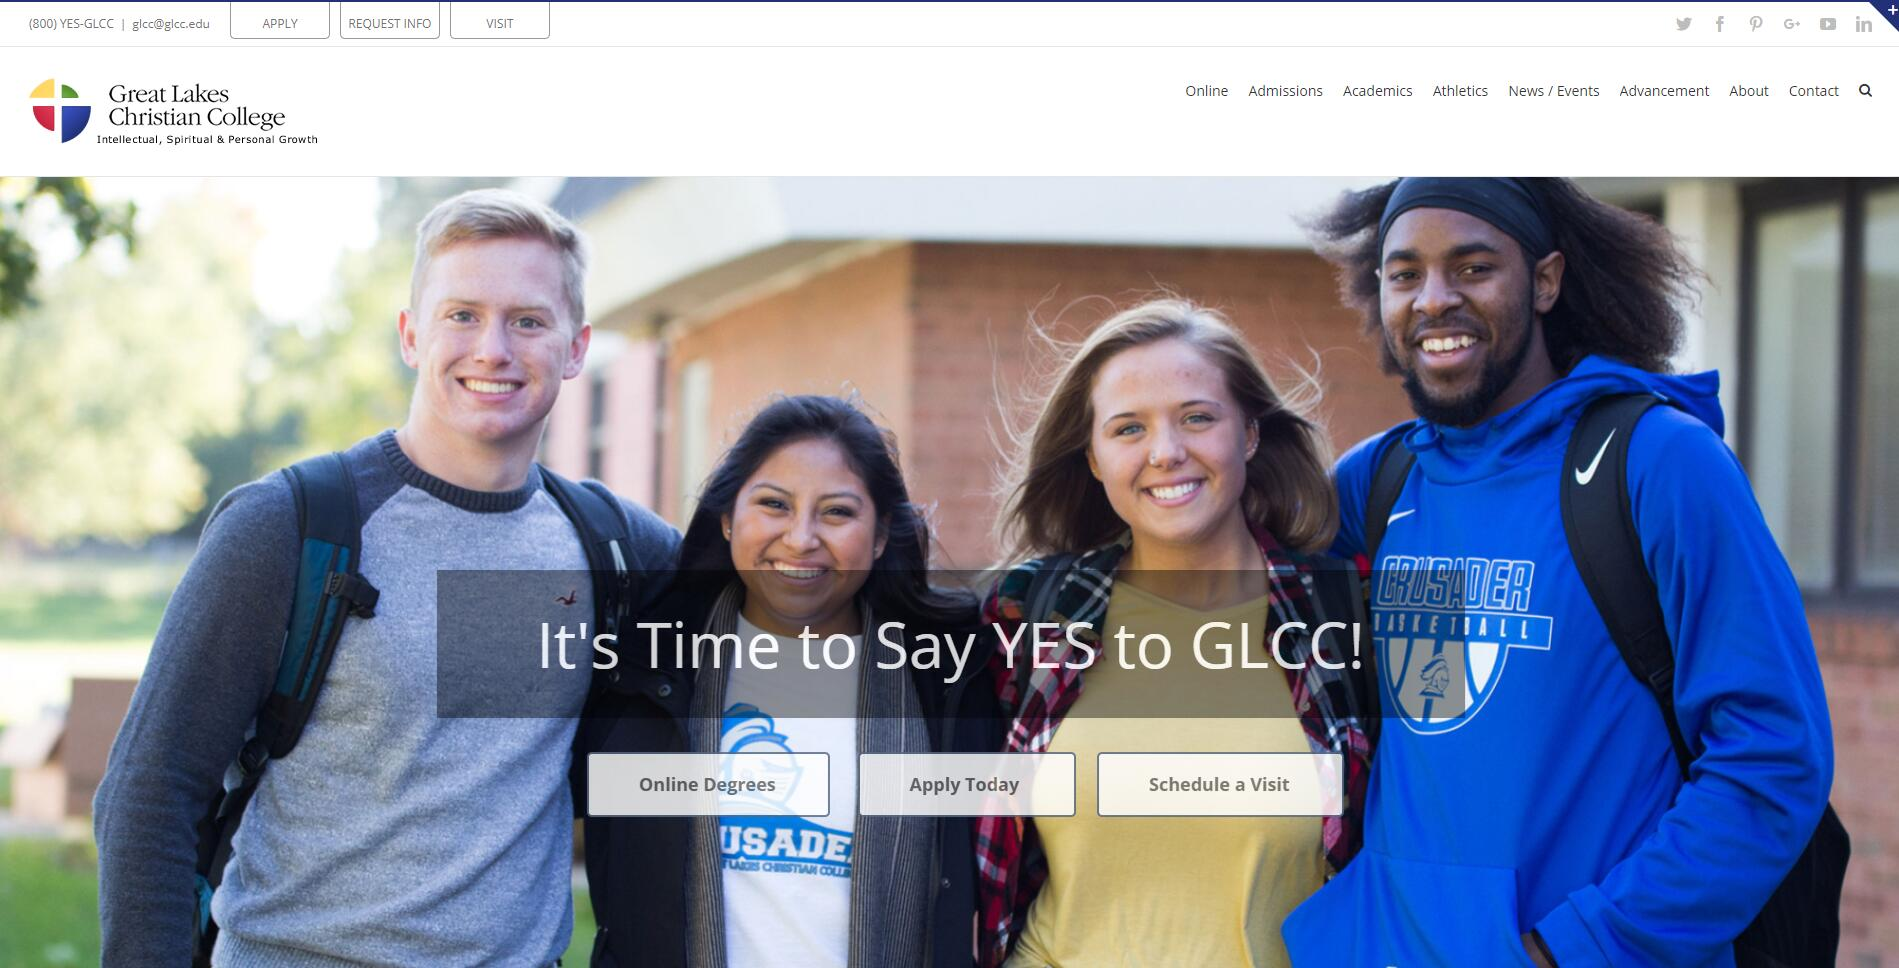 Great Lakes Christian College Acceptance Rate, Average GPA